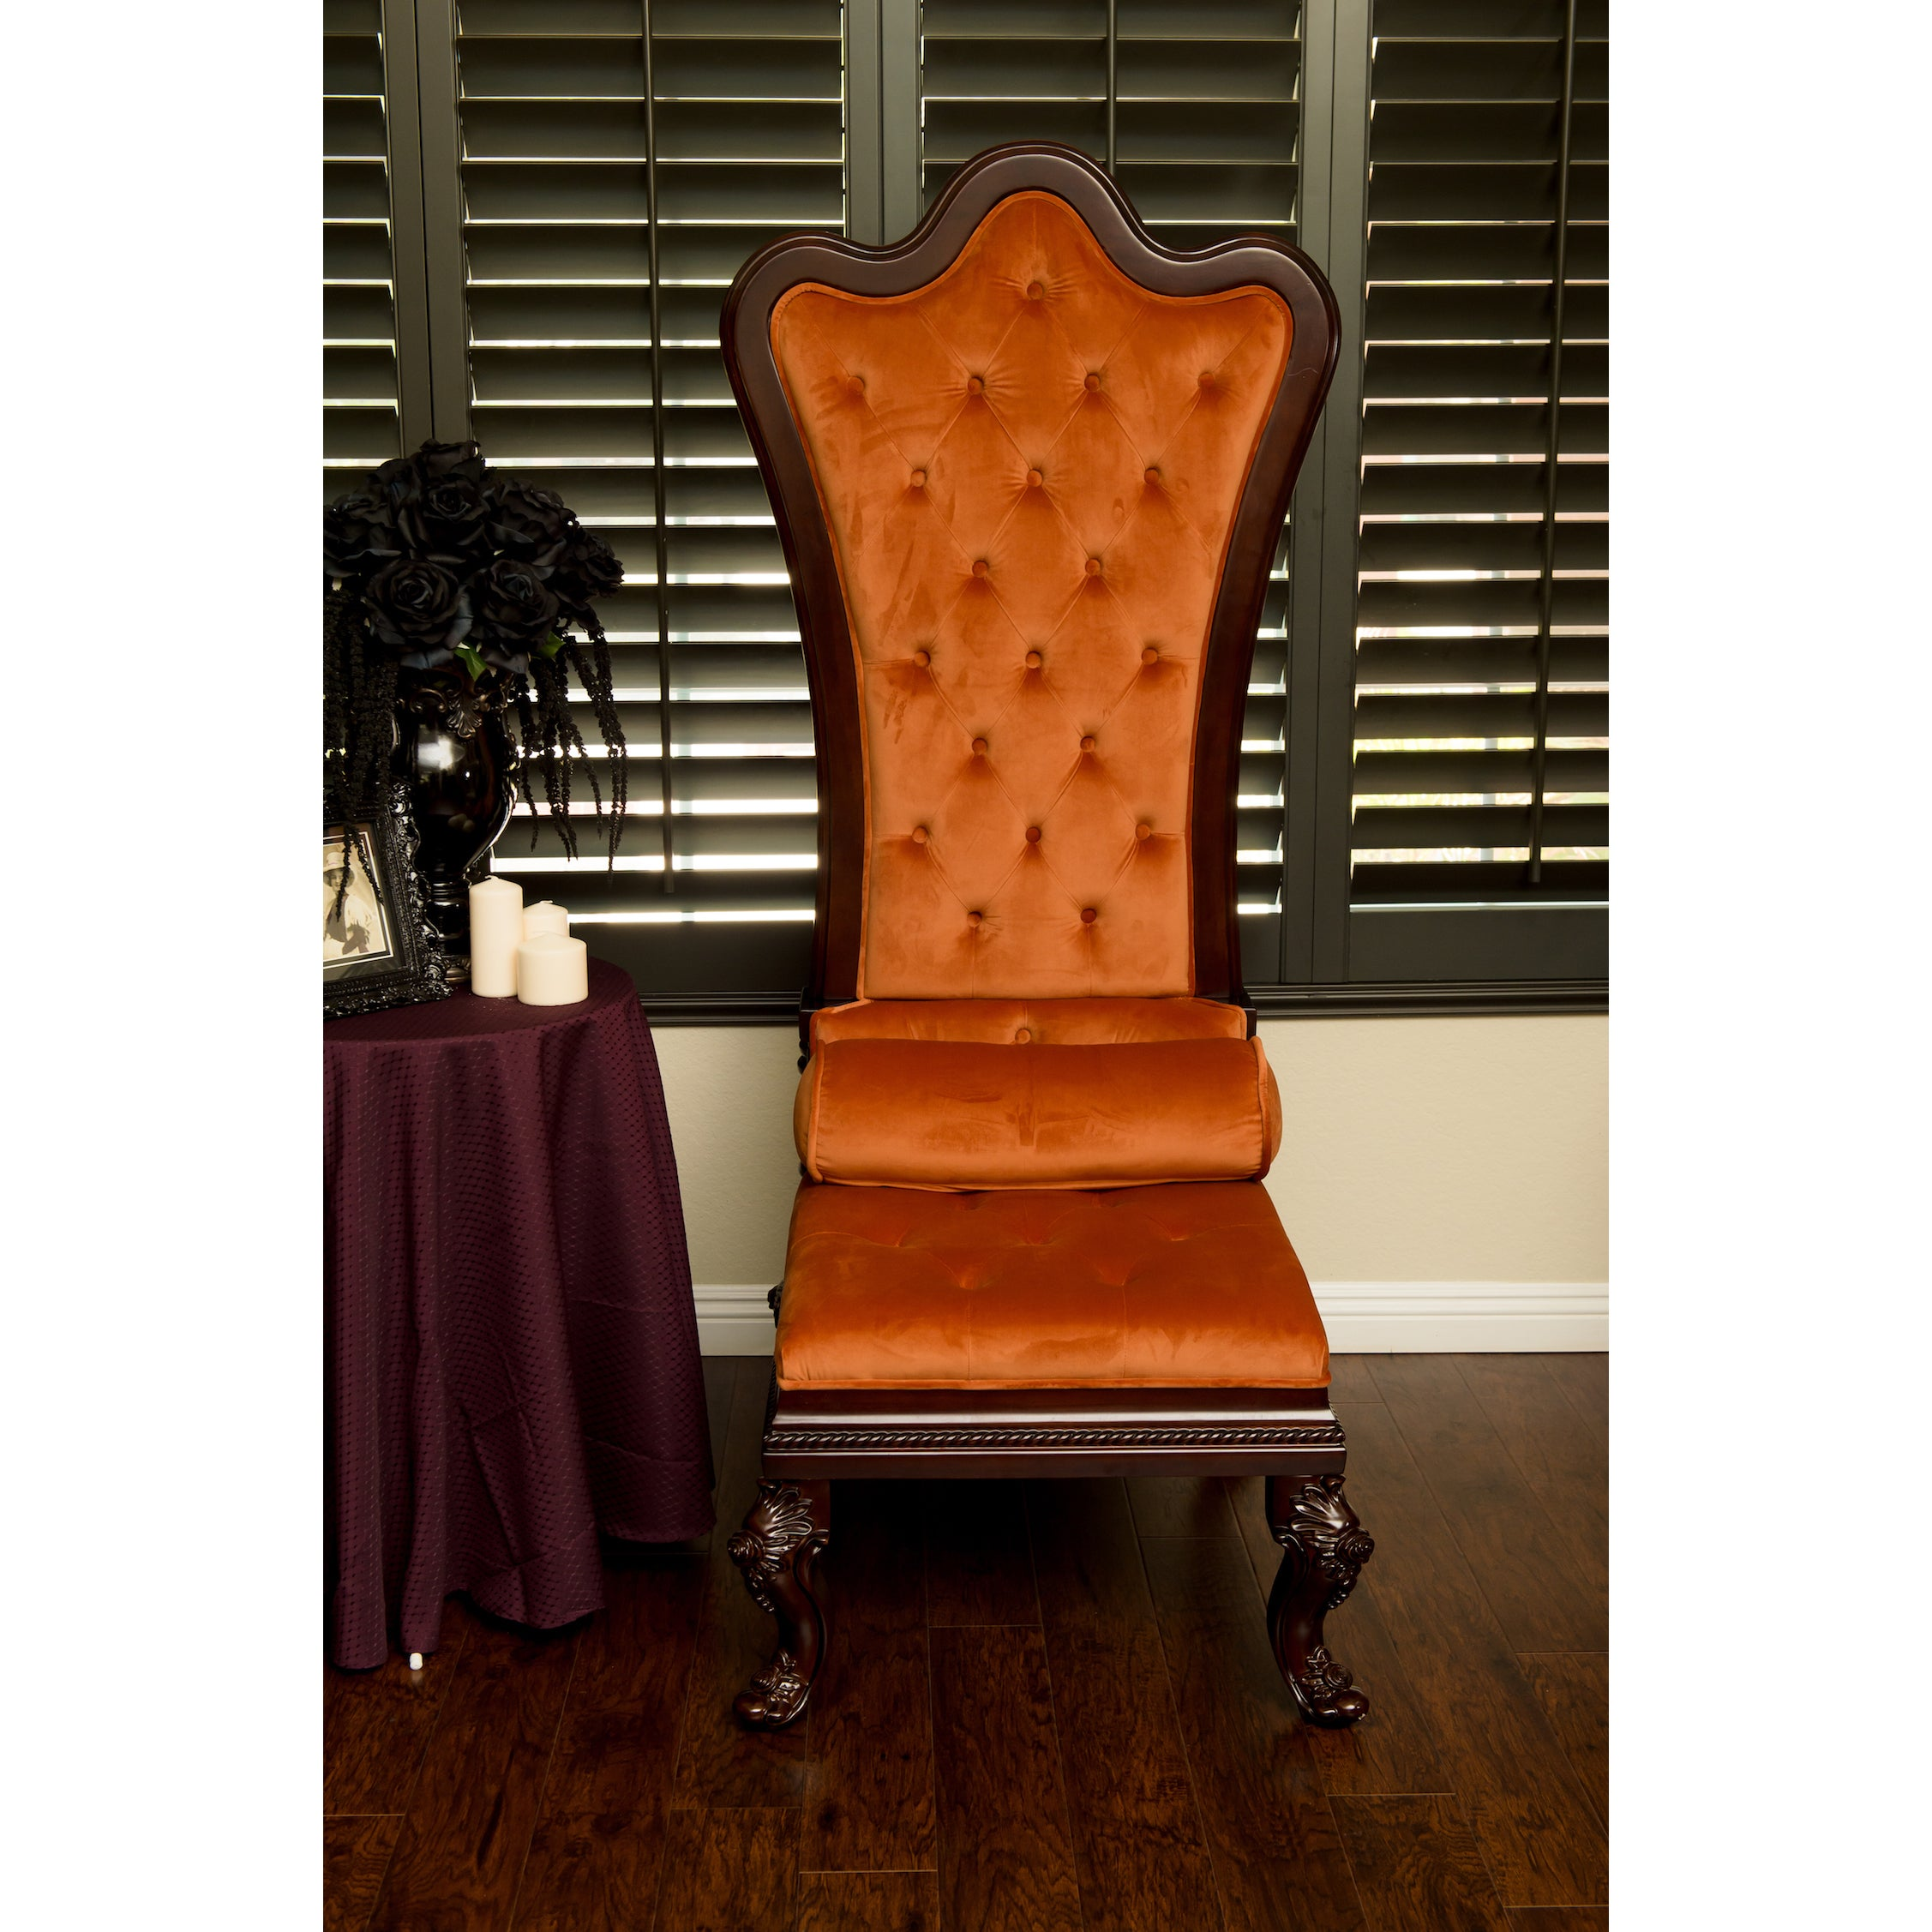 Miraculous Gothic Inspired Orange Velvet High Back Throne Chair Beutiful Home Inspiration Ommitmahrainfo